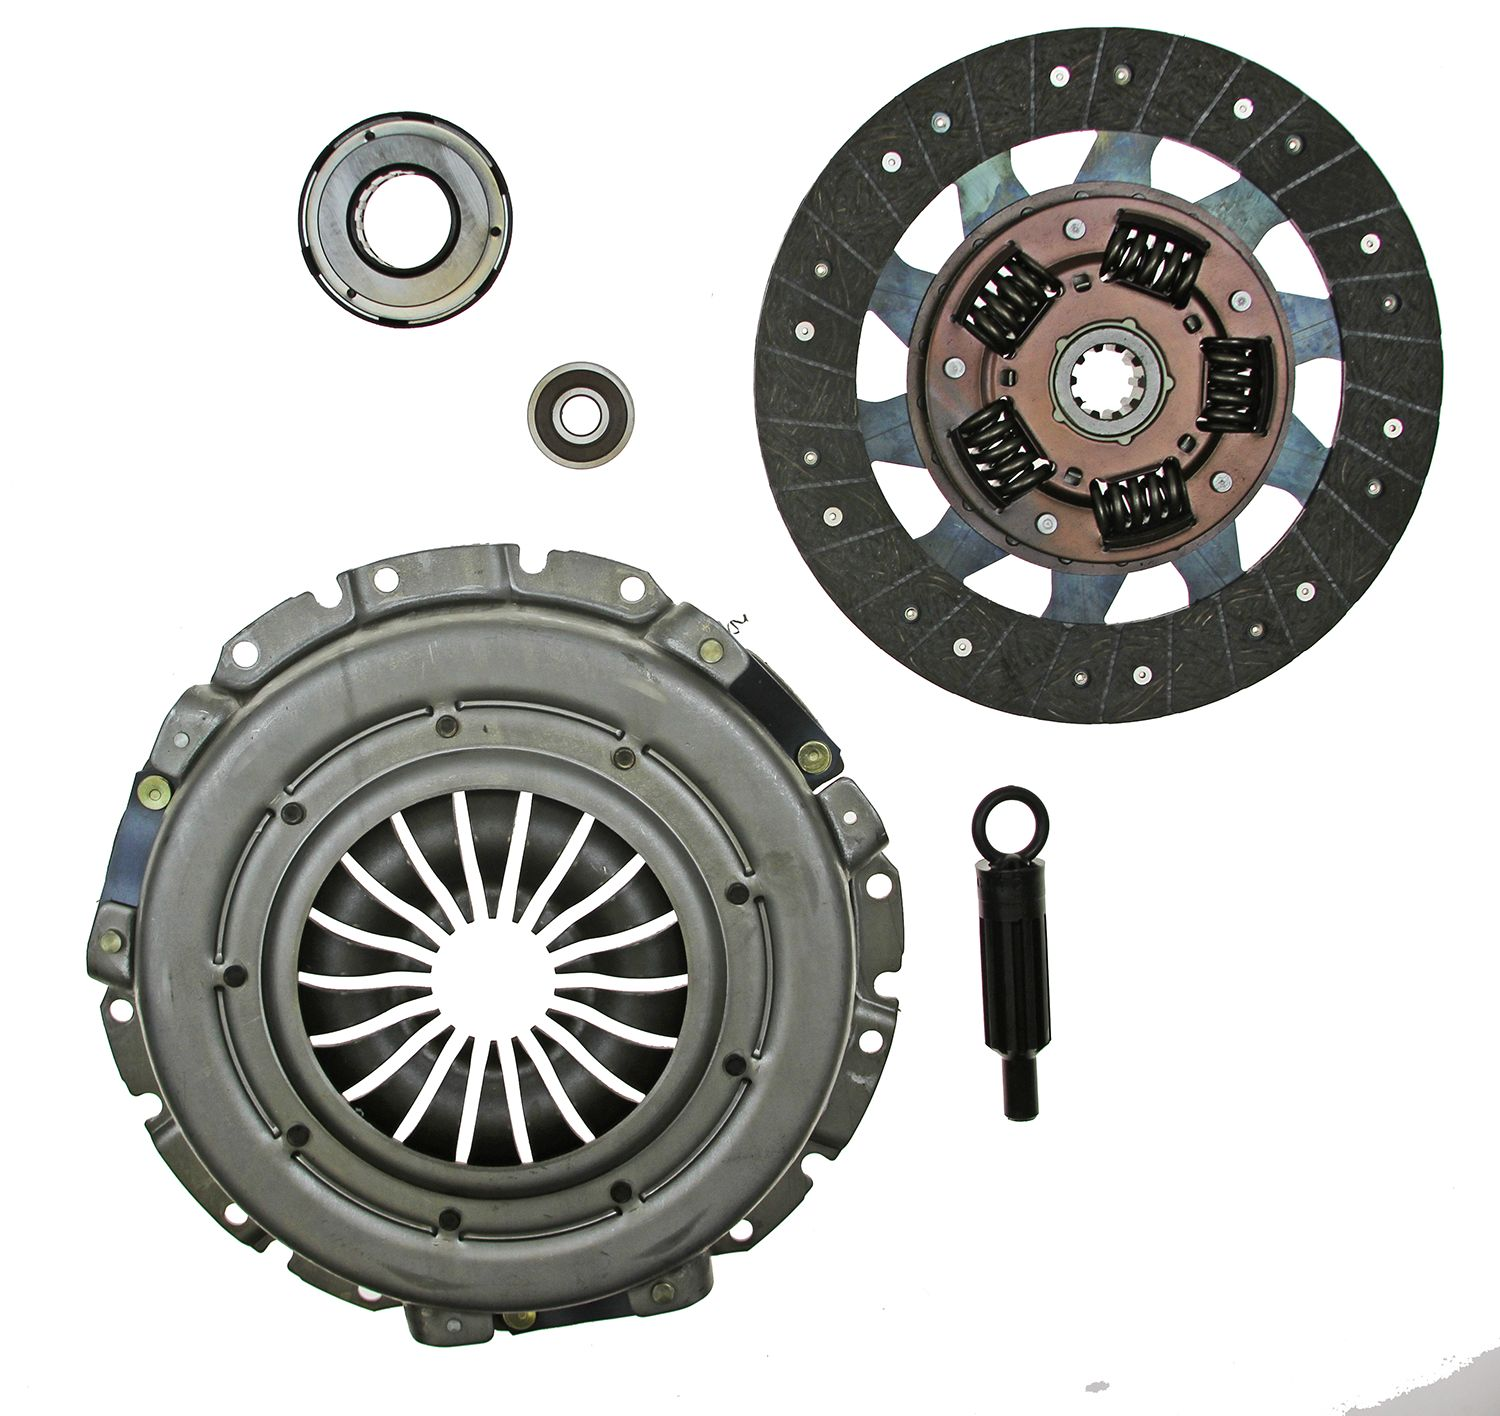 2000 GMC Sierra 1500 Clutch Kit